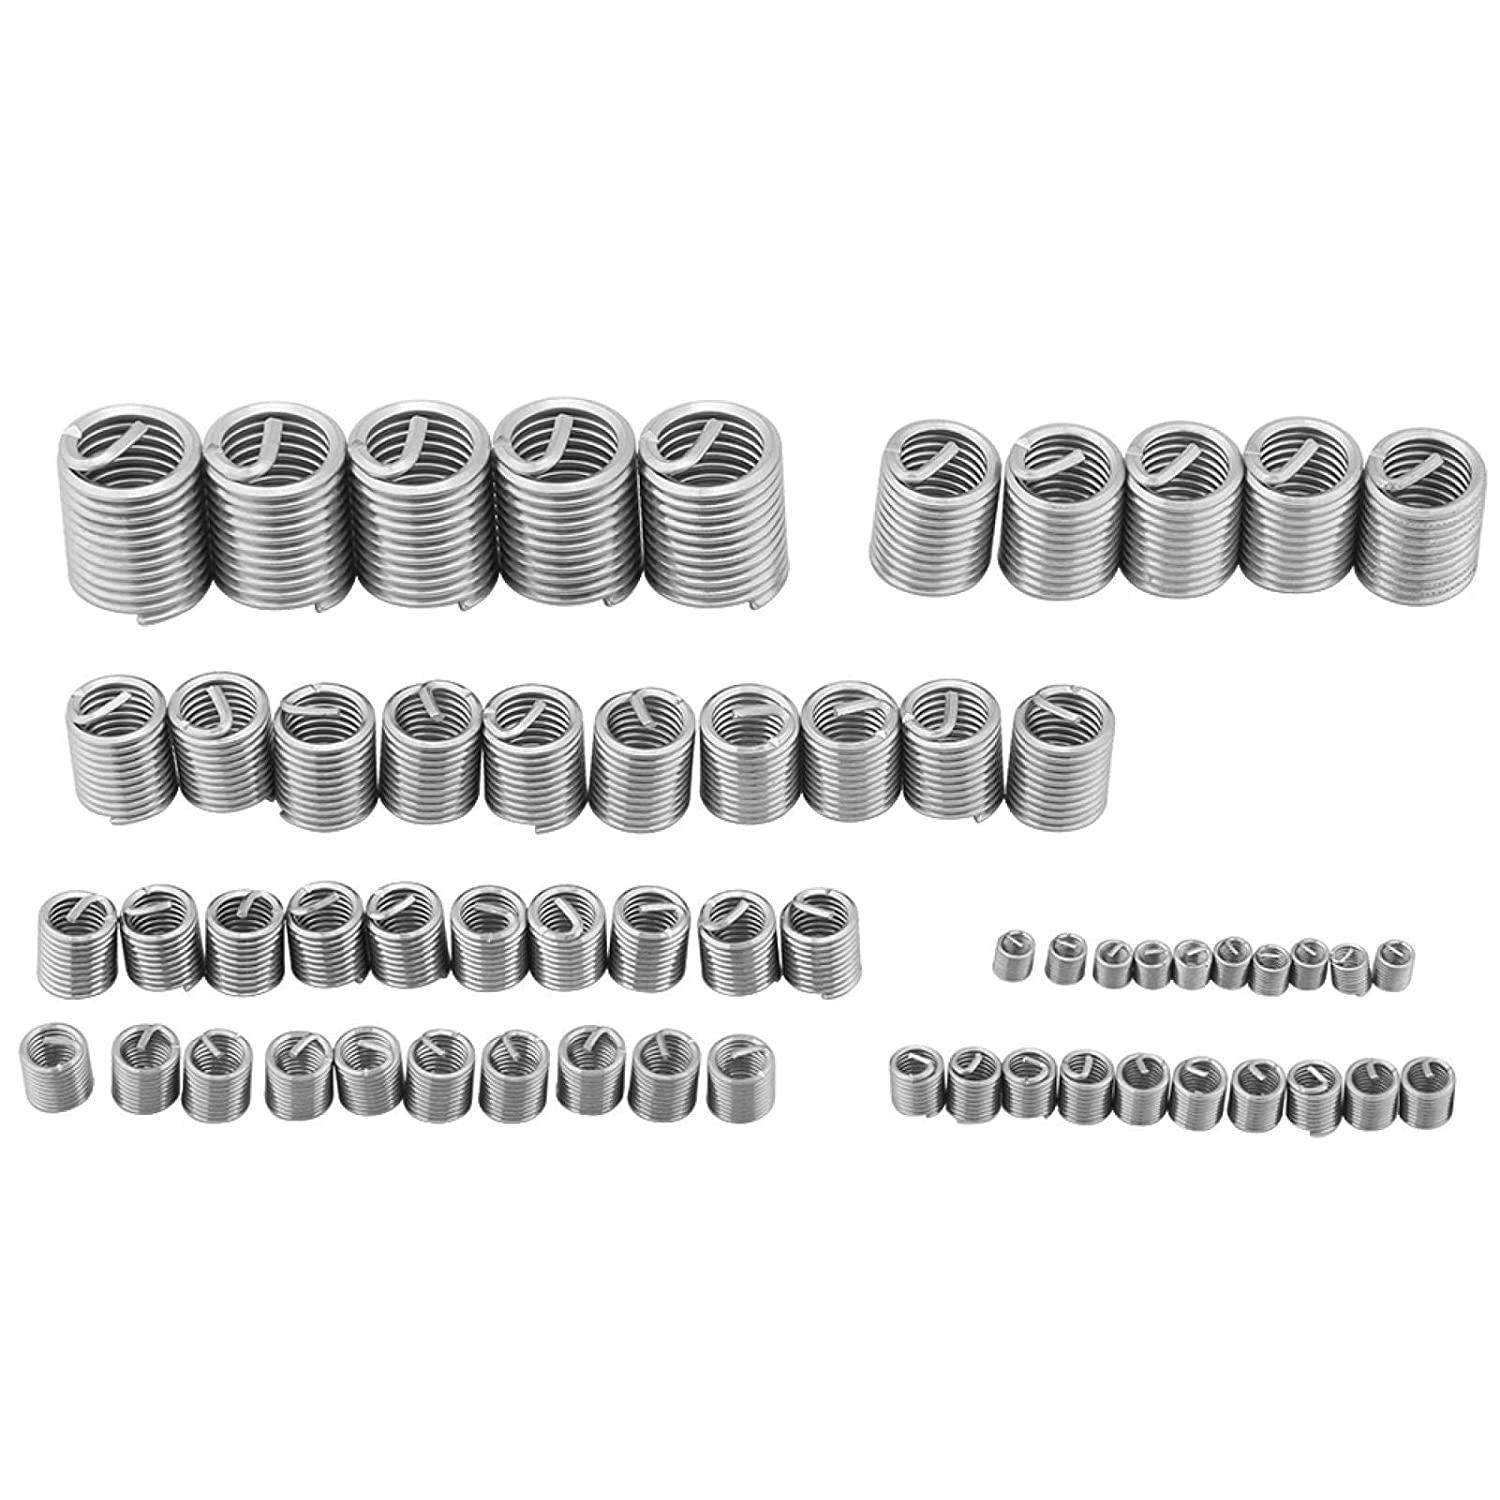 60pcs Stainless Year-end Soldering gift Steel Wire Insert Industrial Multi-Specif Thread